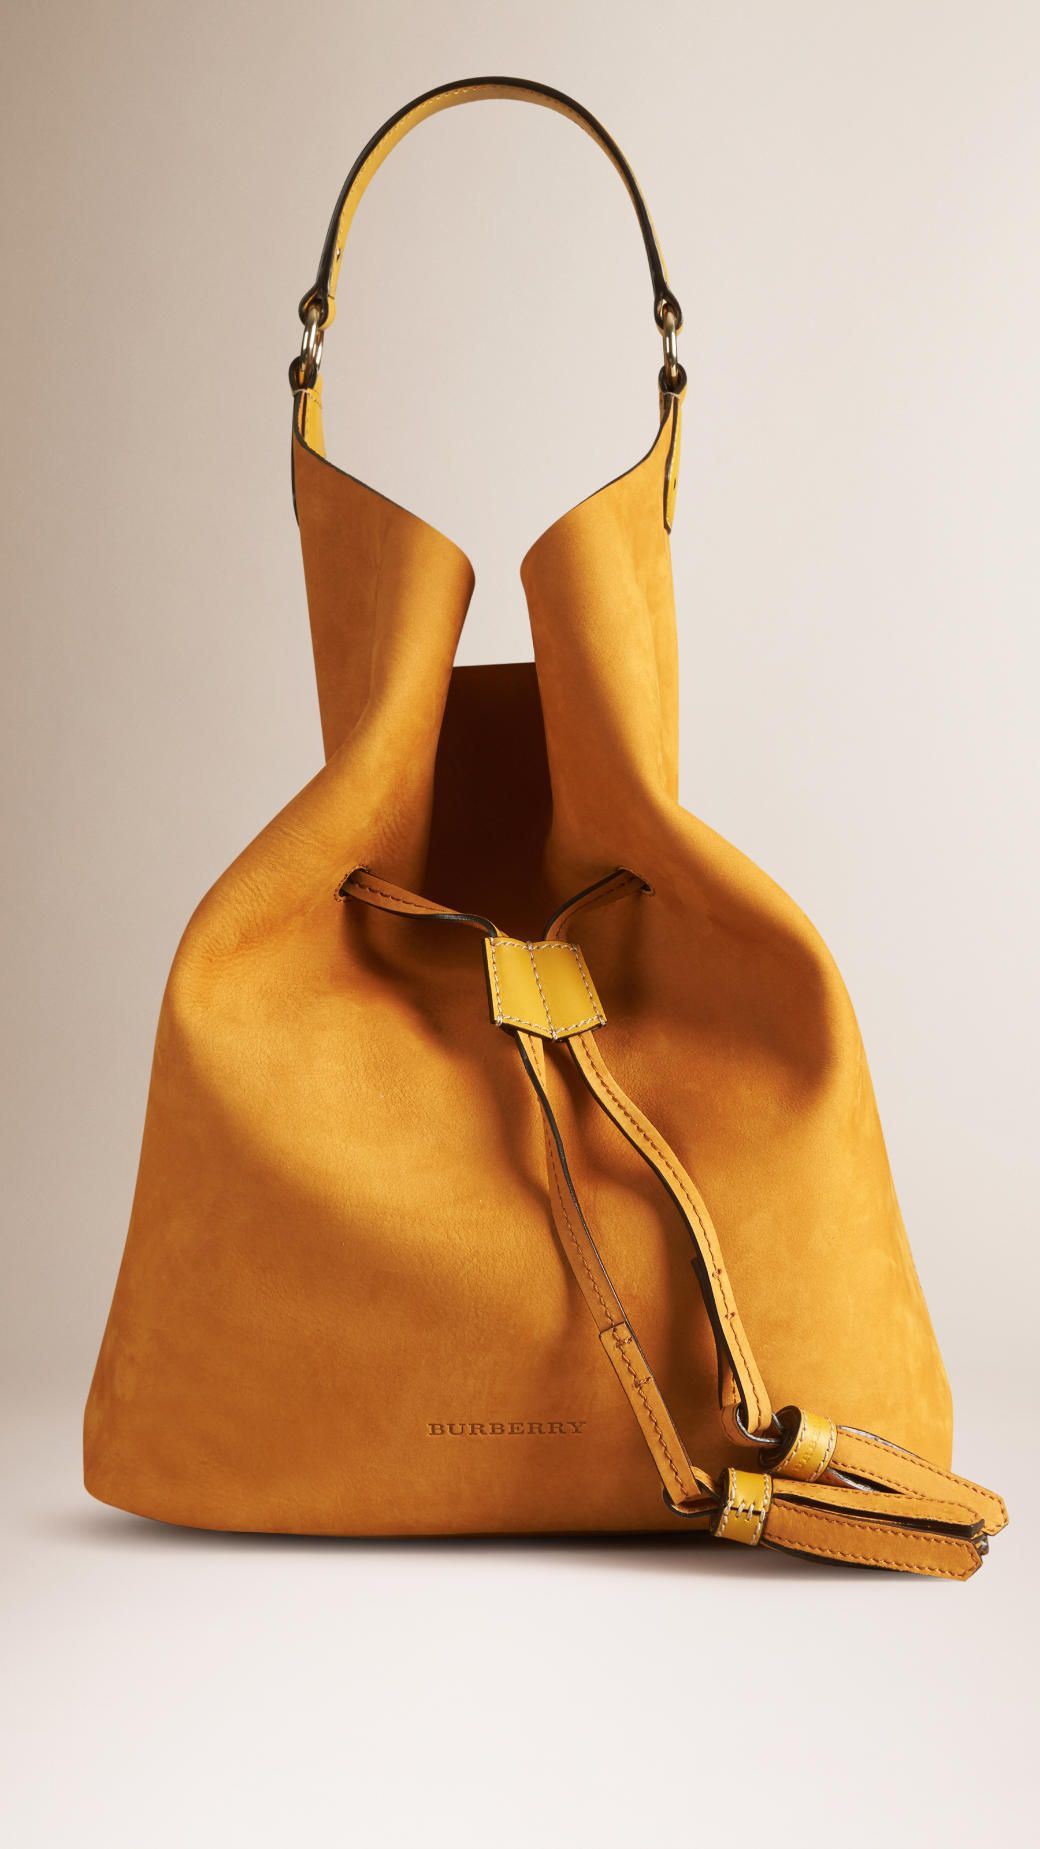 cc3751adec39 ... shoulder bags and more leather bags. The Large Ashby in Nubuck Light  Copper Saffron Yellow